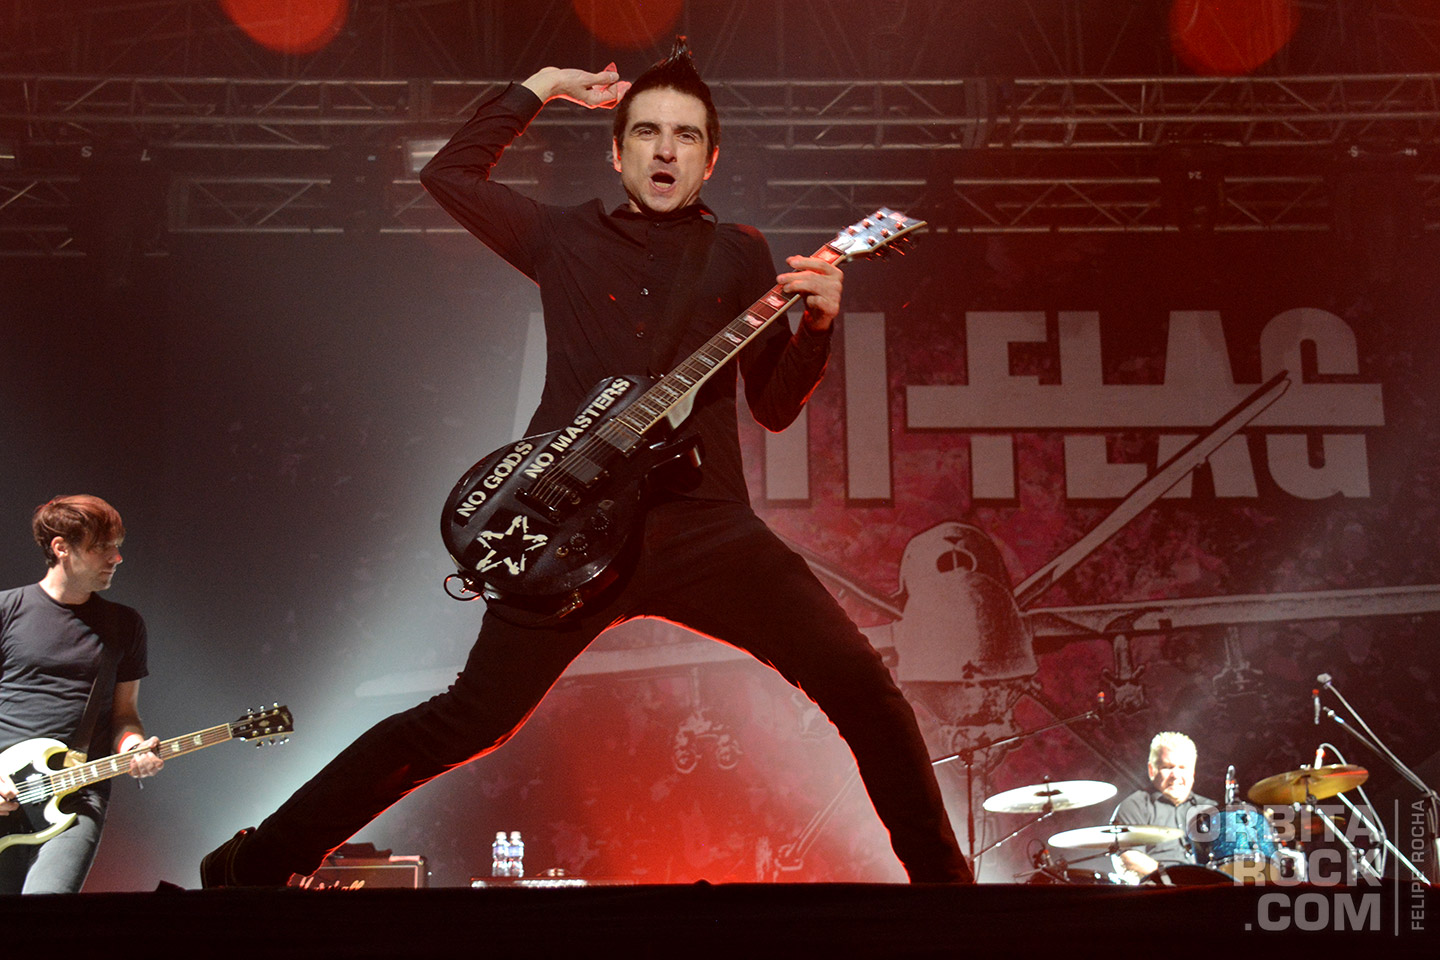 Anti-Flag en Rock & Shout 2016